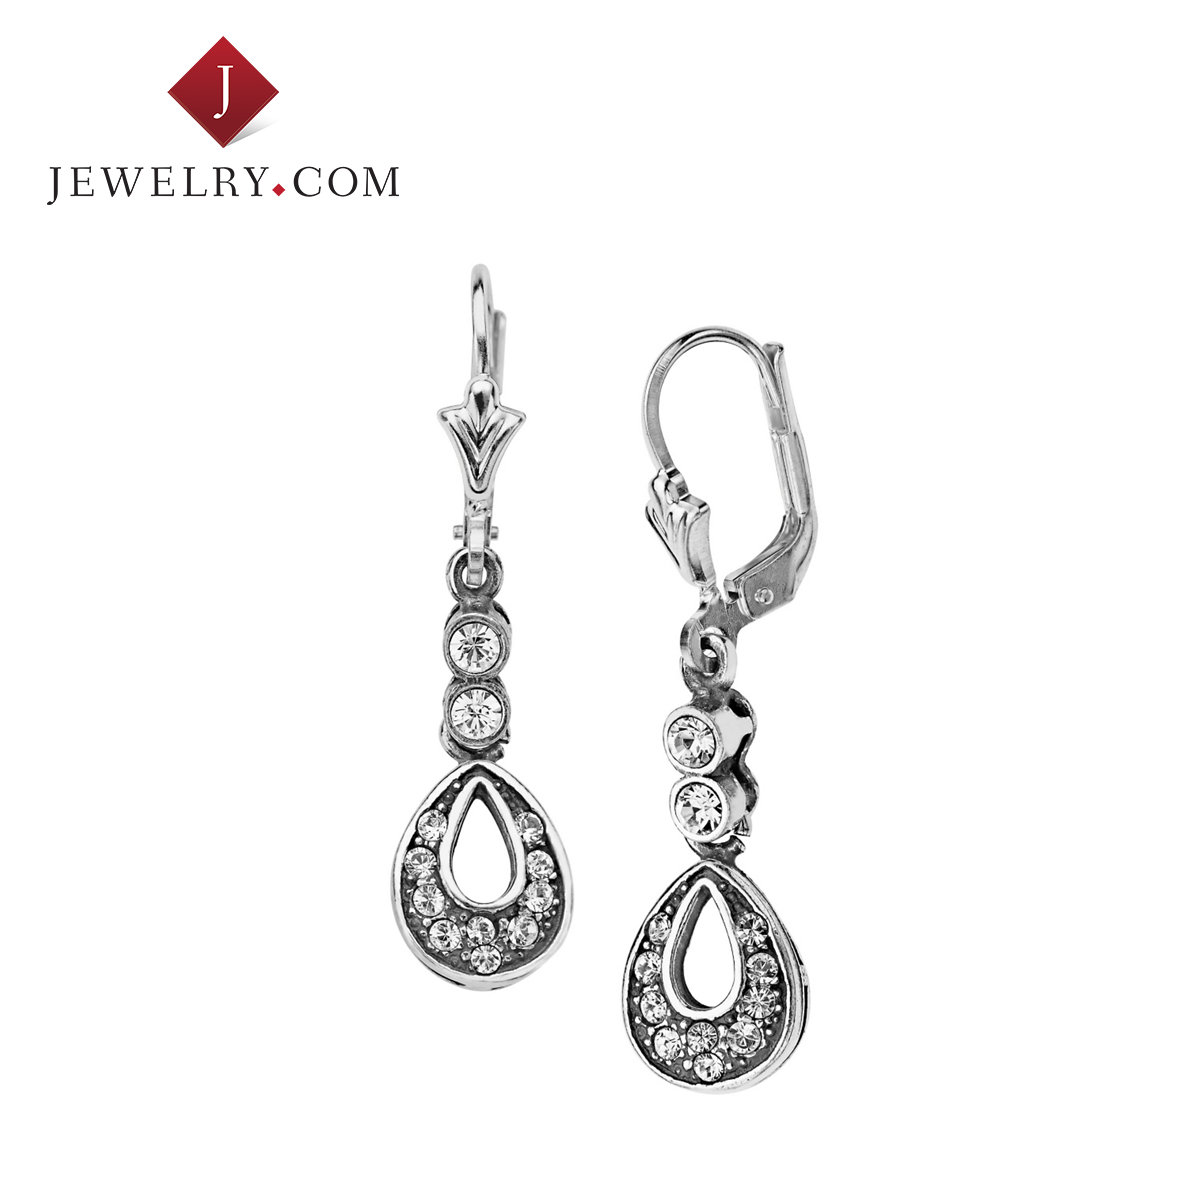 Ms. van kempen inlaid swarovski crystal sterling silver earrings elegant fashion wild ornaments decorations